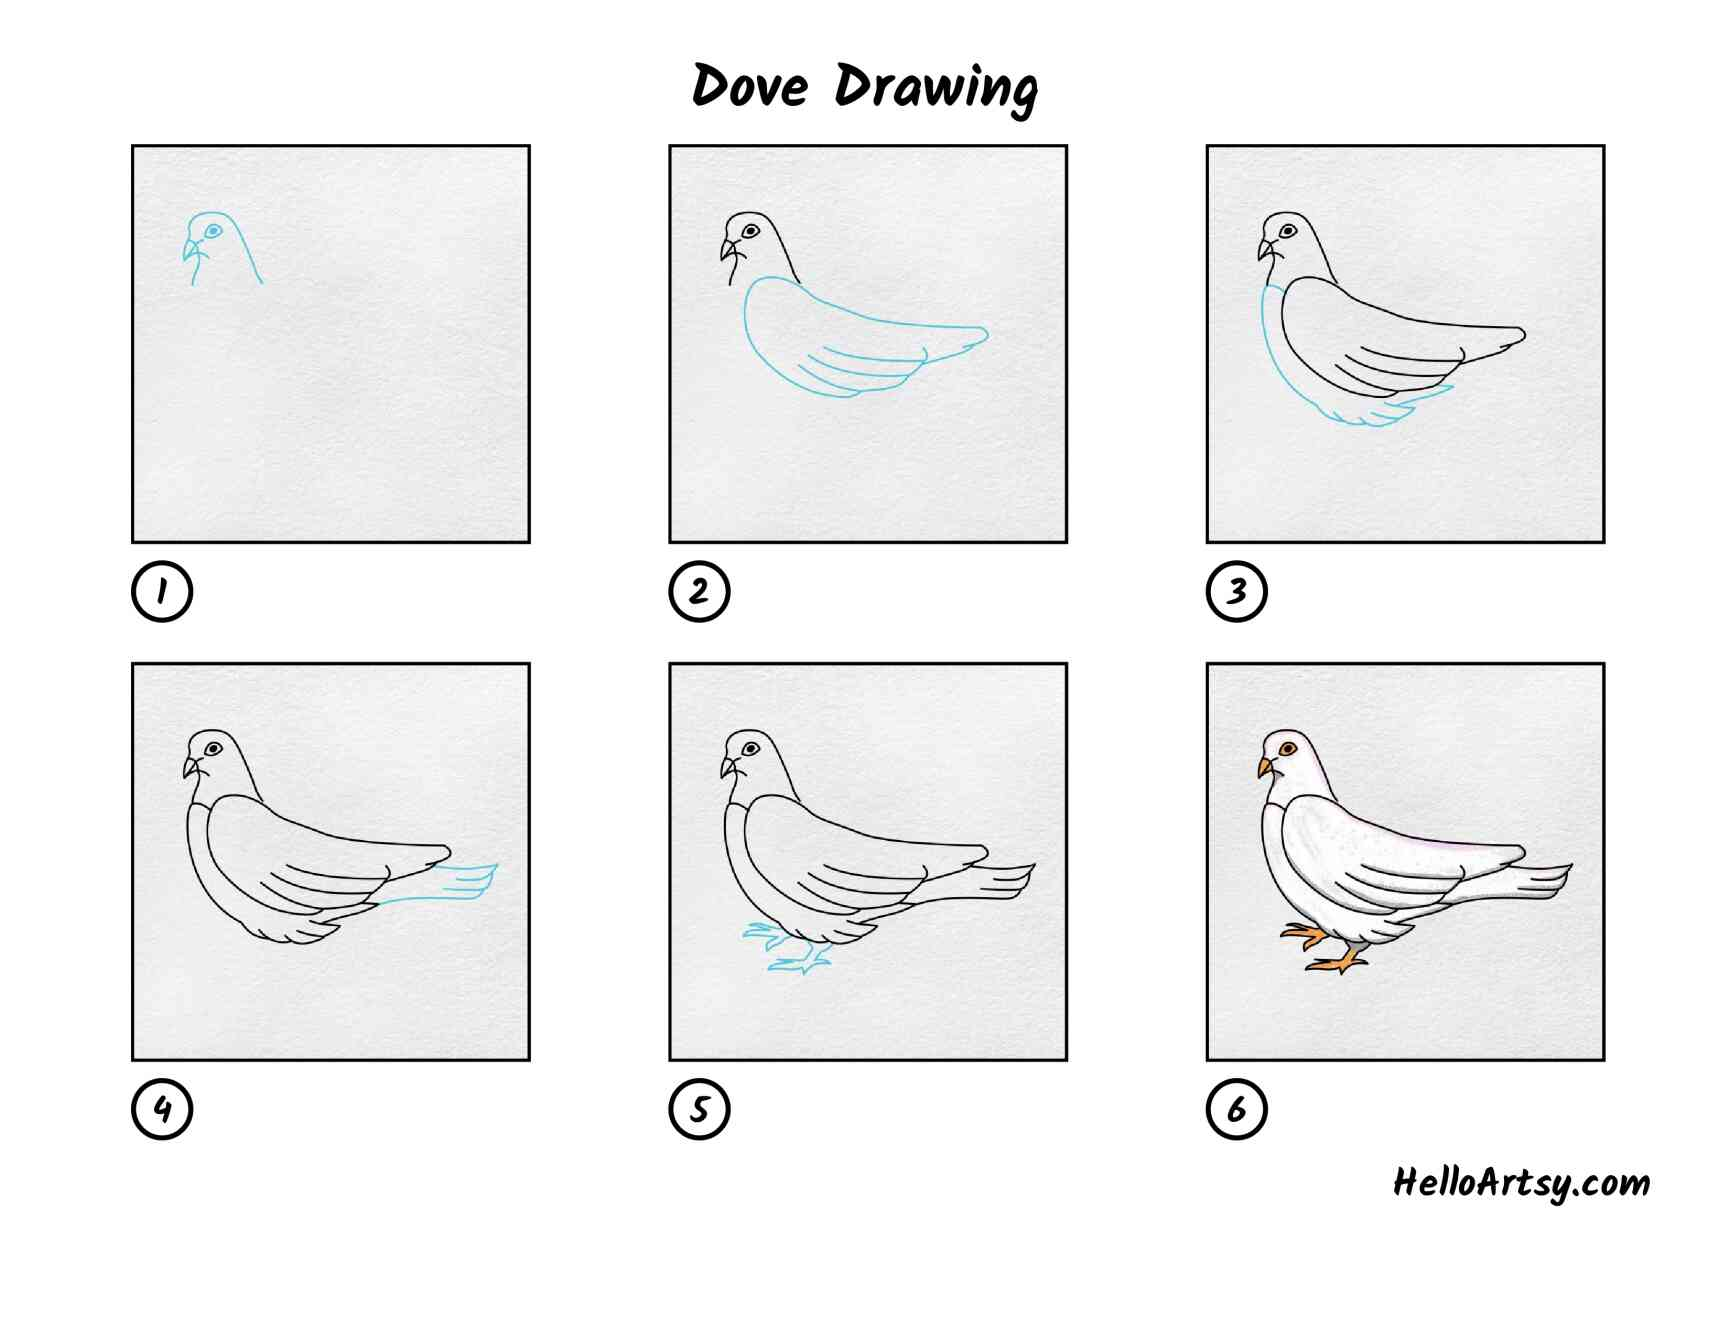 Dove Drawing: All Steps